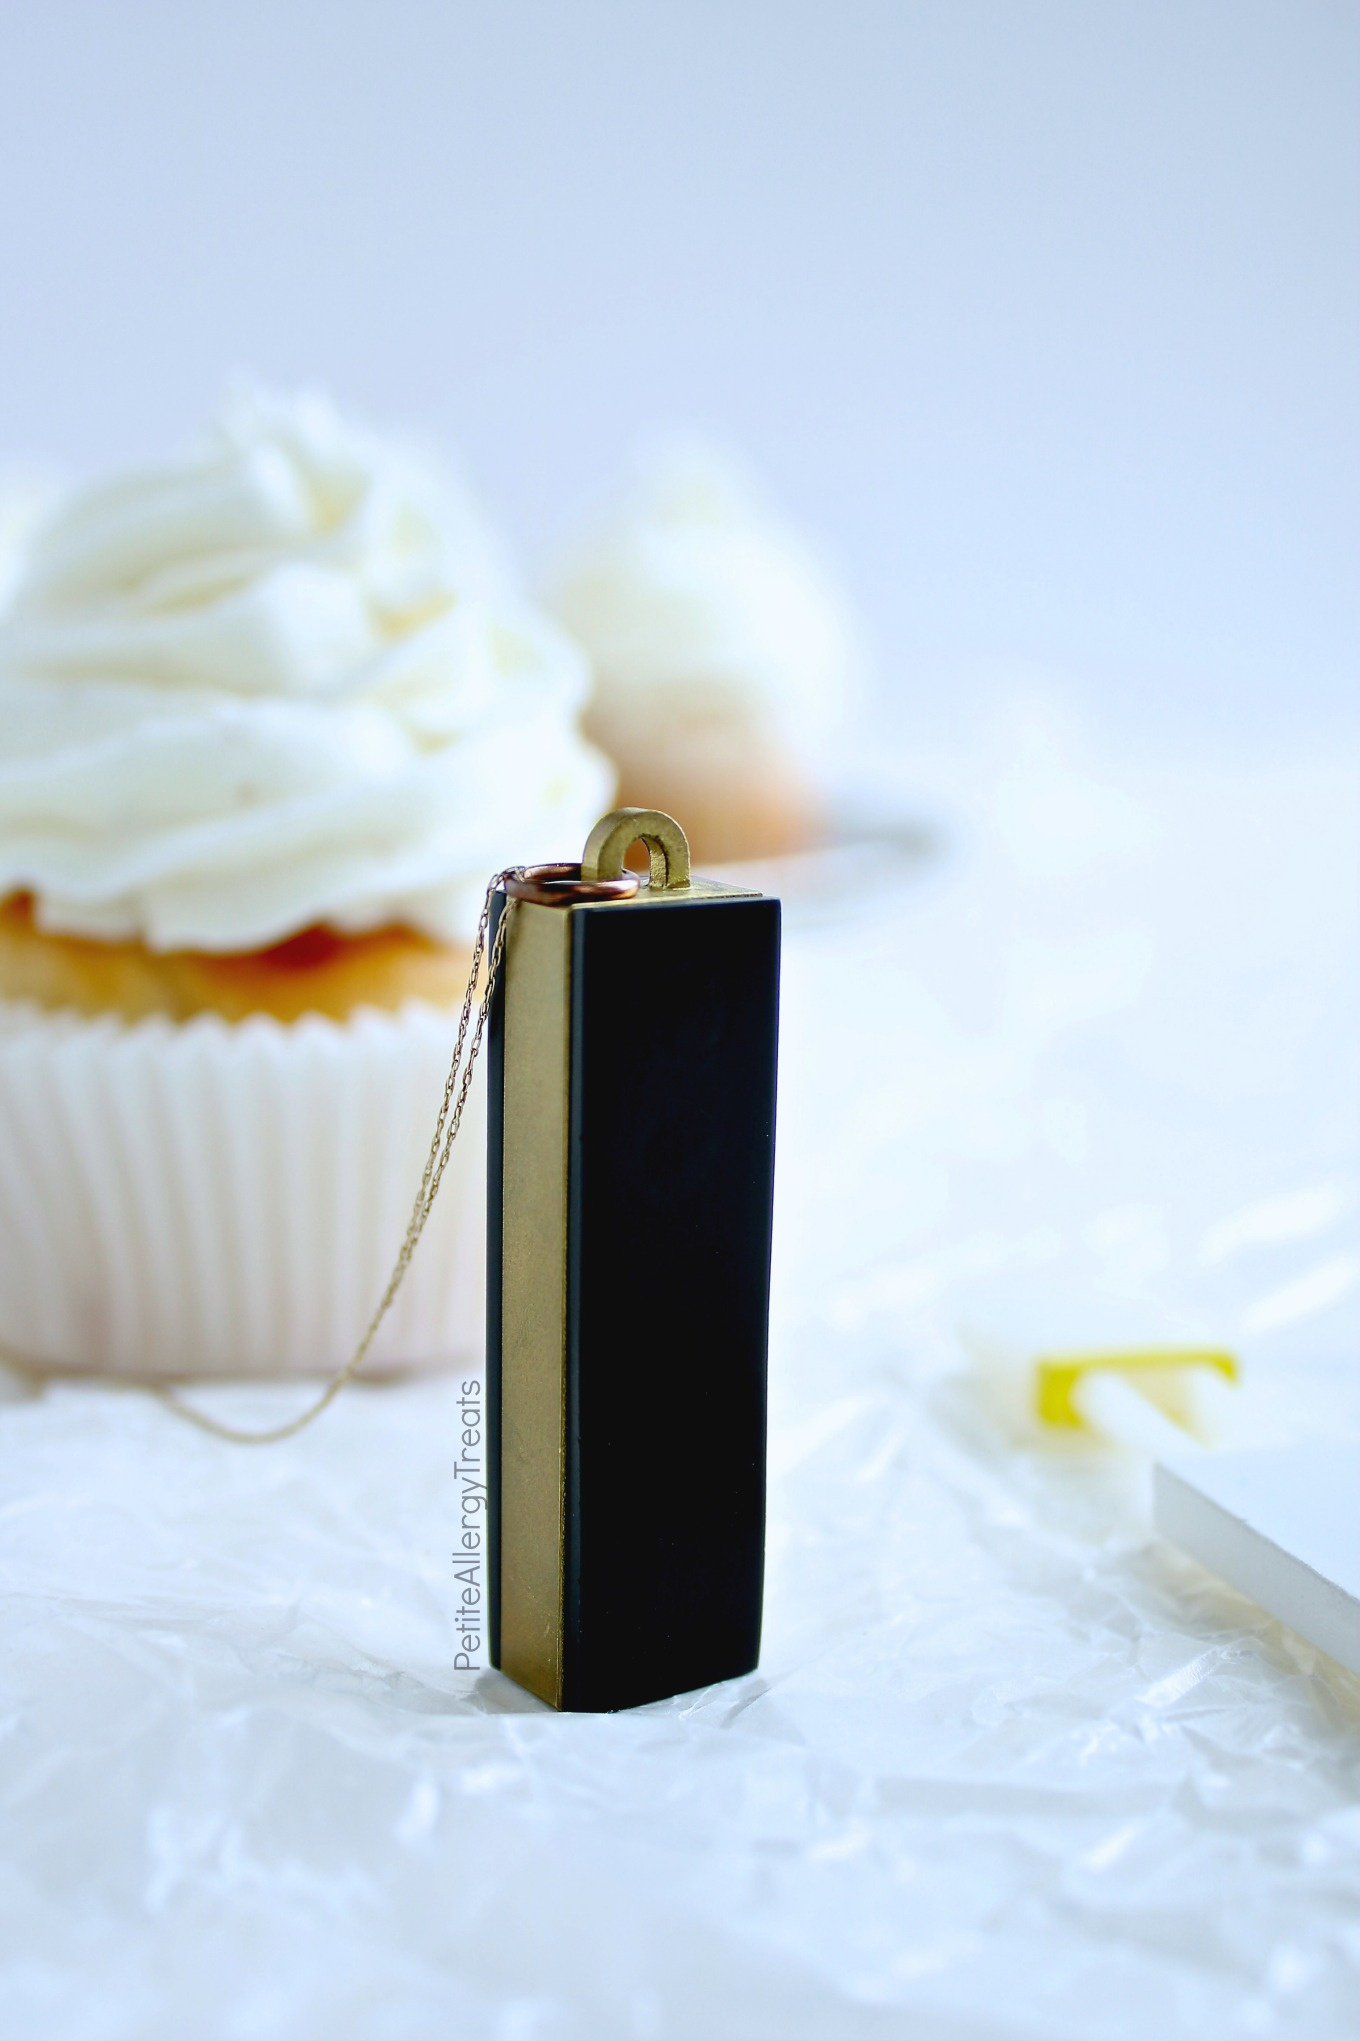 Gluten Free Dairy Free Vanilla Cupcakes Recipe (vegan)- Bakery style real vanilla bean cupcakes. Food Allergy friendly Top 8 Free & Allergy Amulet food detection device.